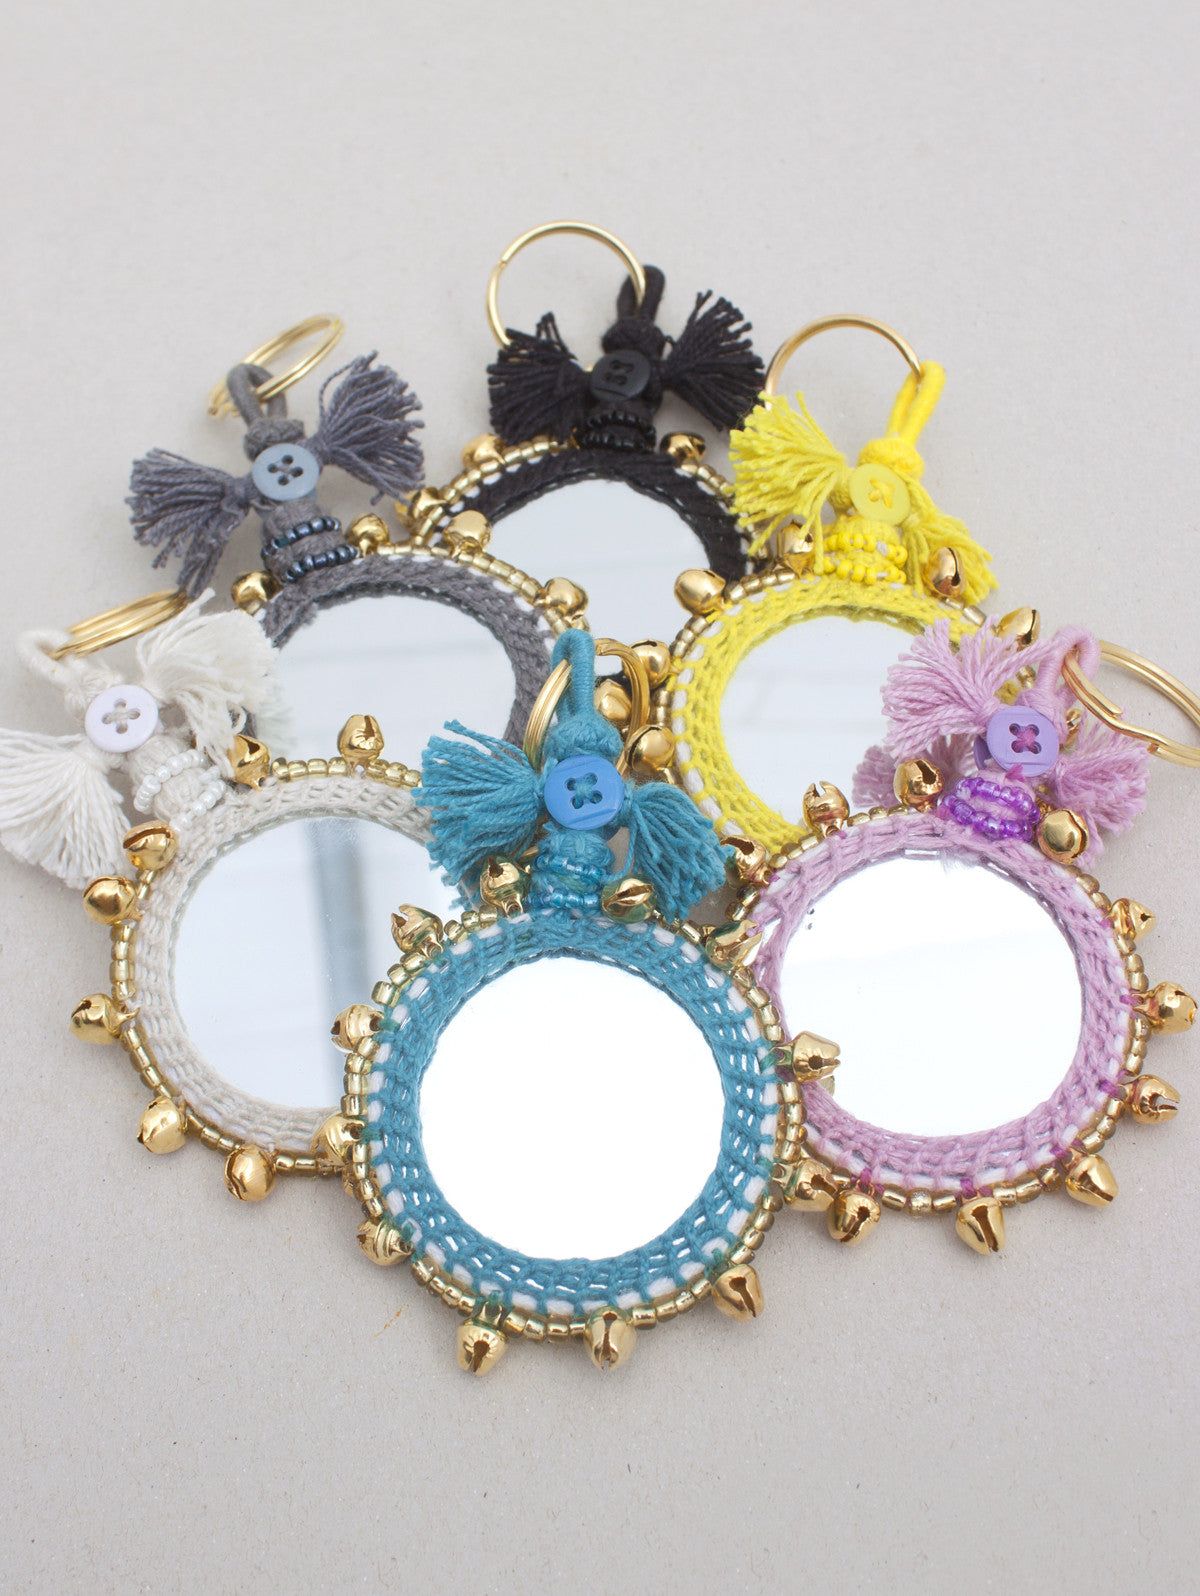 Bell Mirror Keyrings